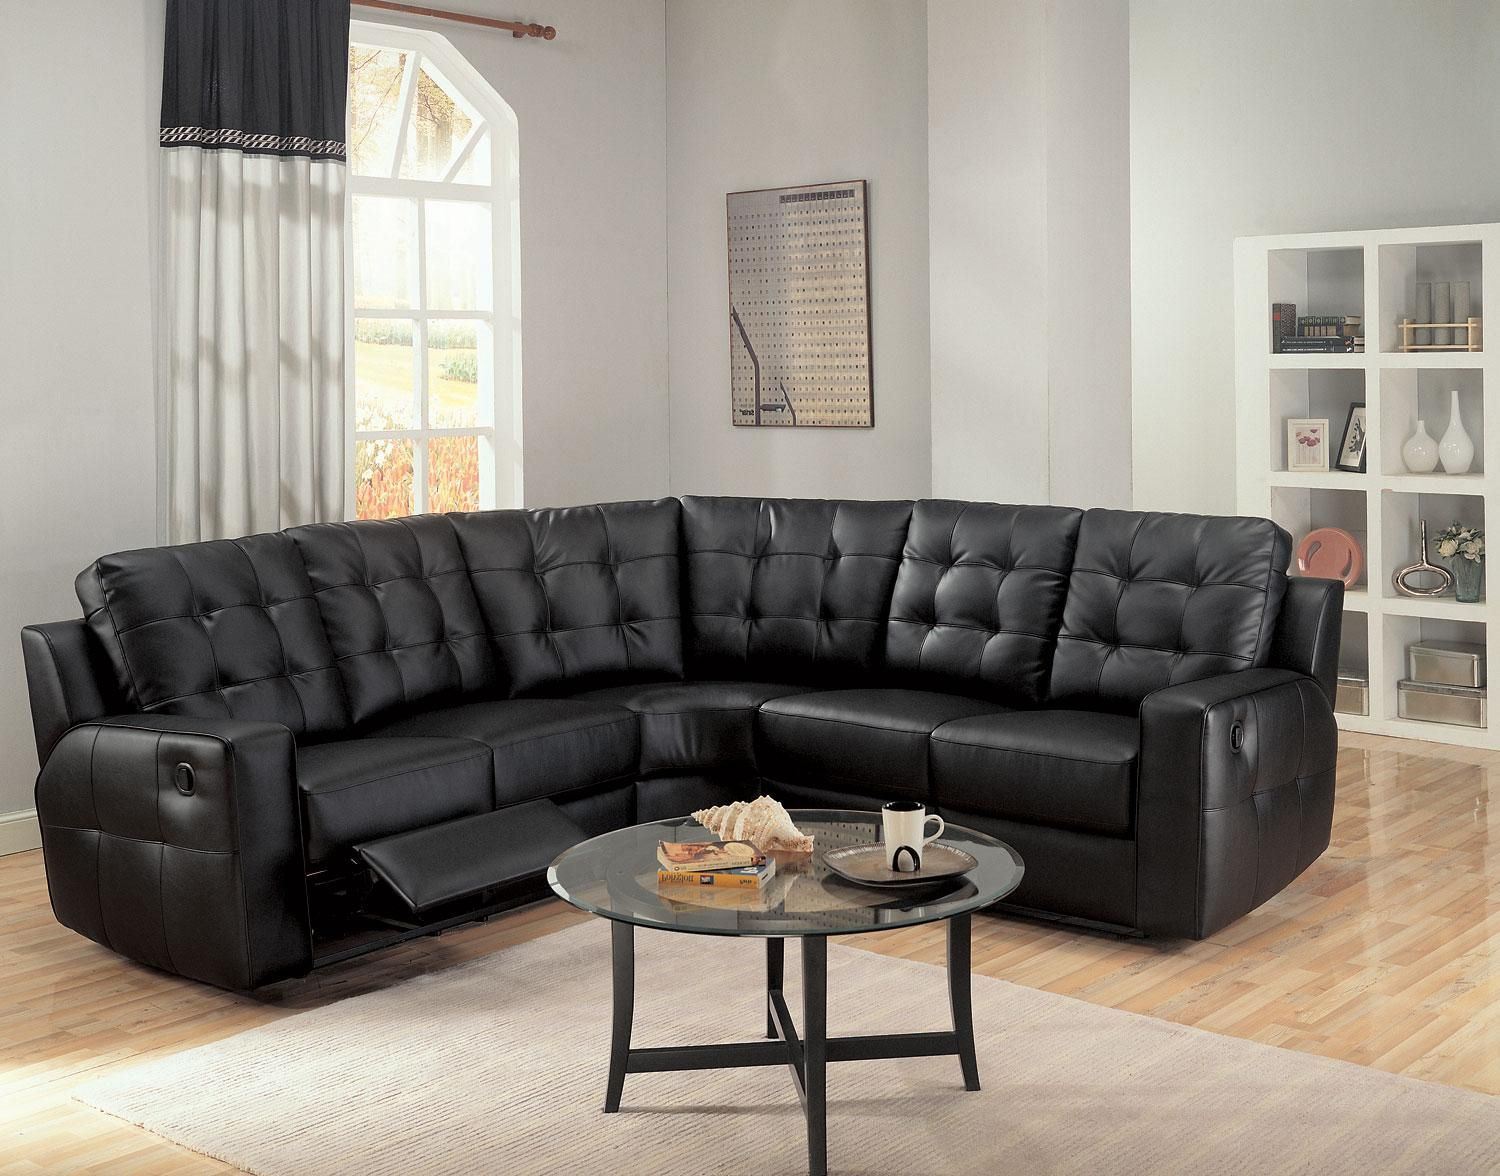 1,889.99 The Black Reclining Sectional w/ Armless Chair